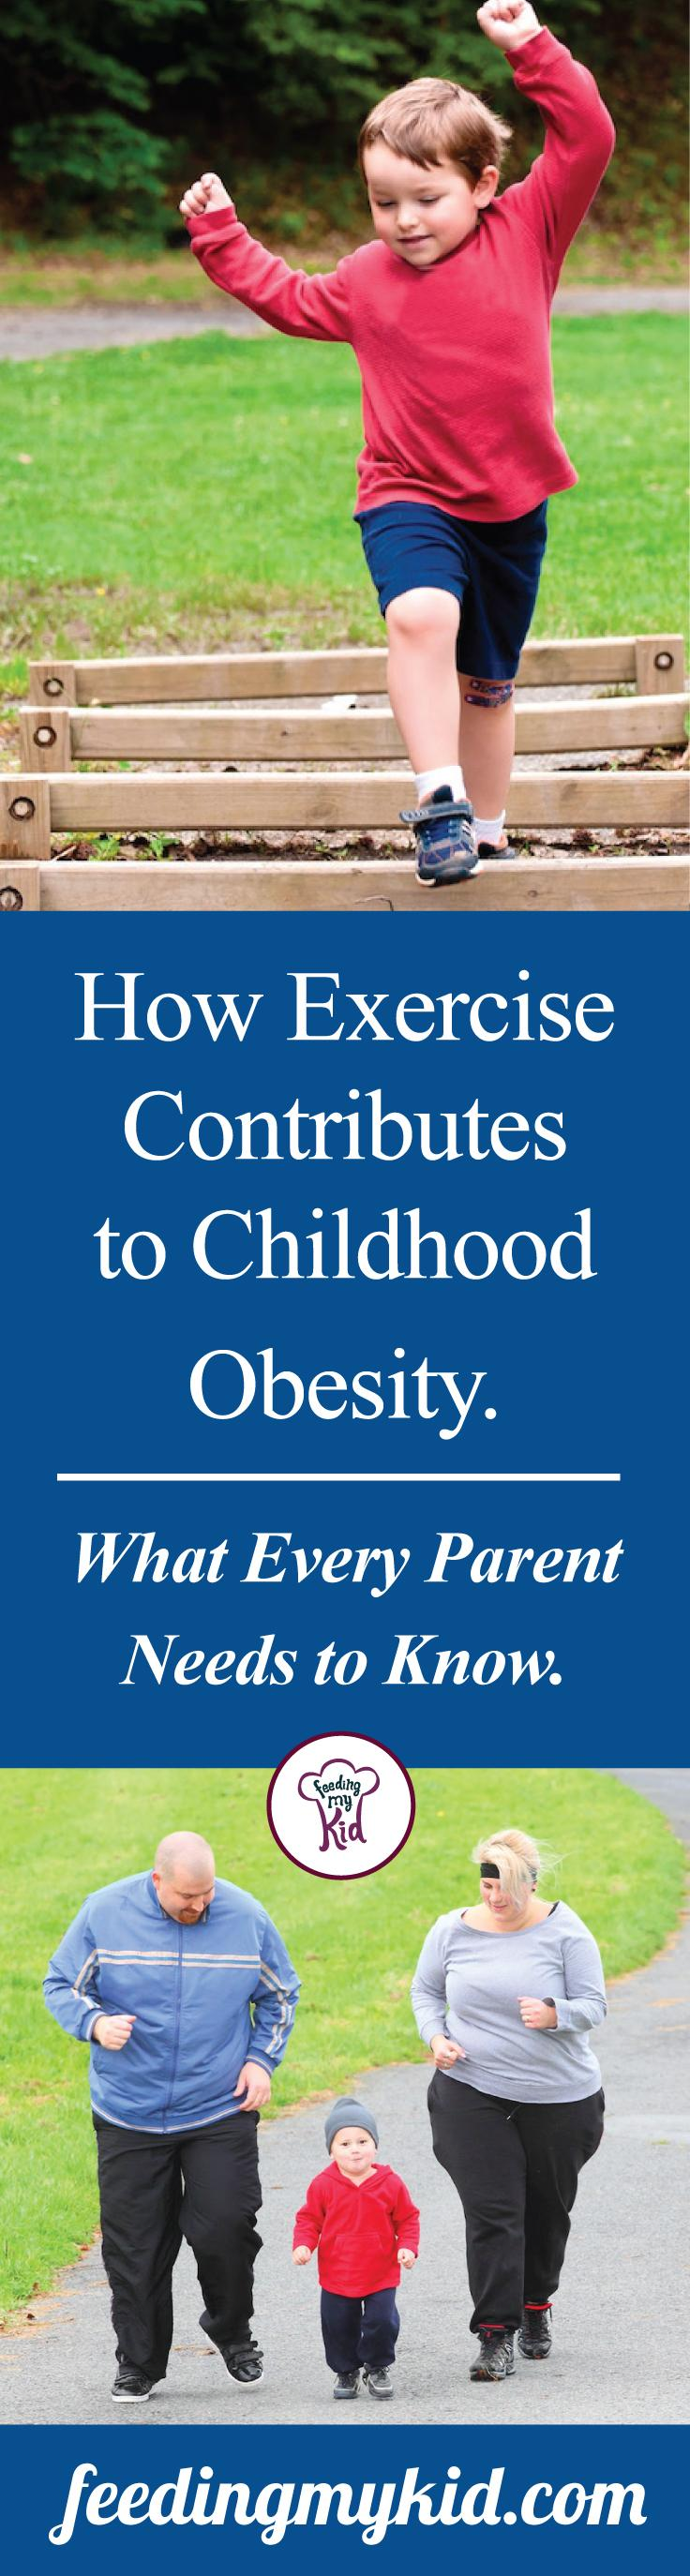 Articles about child obesity?